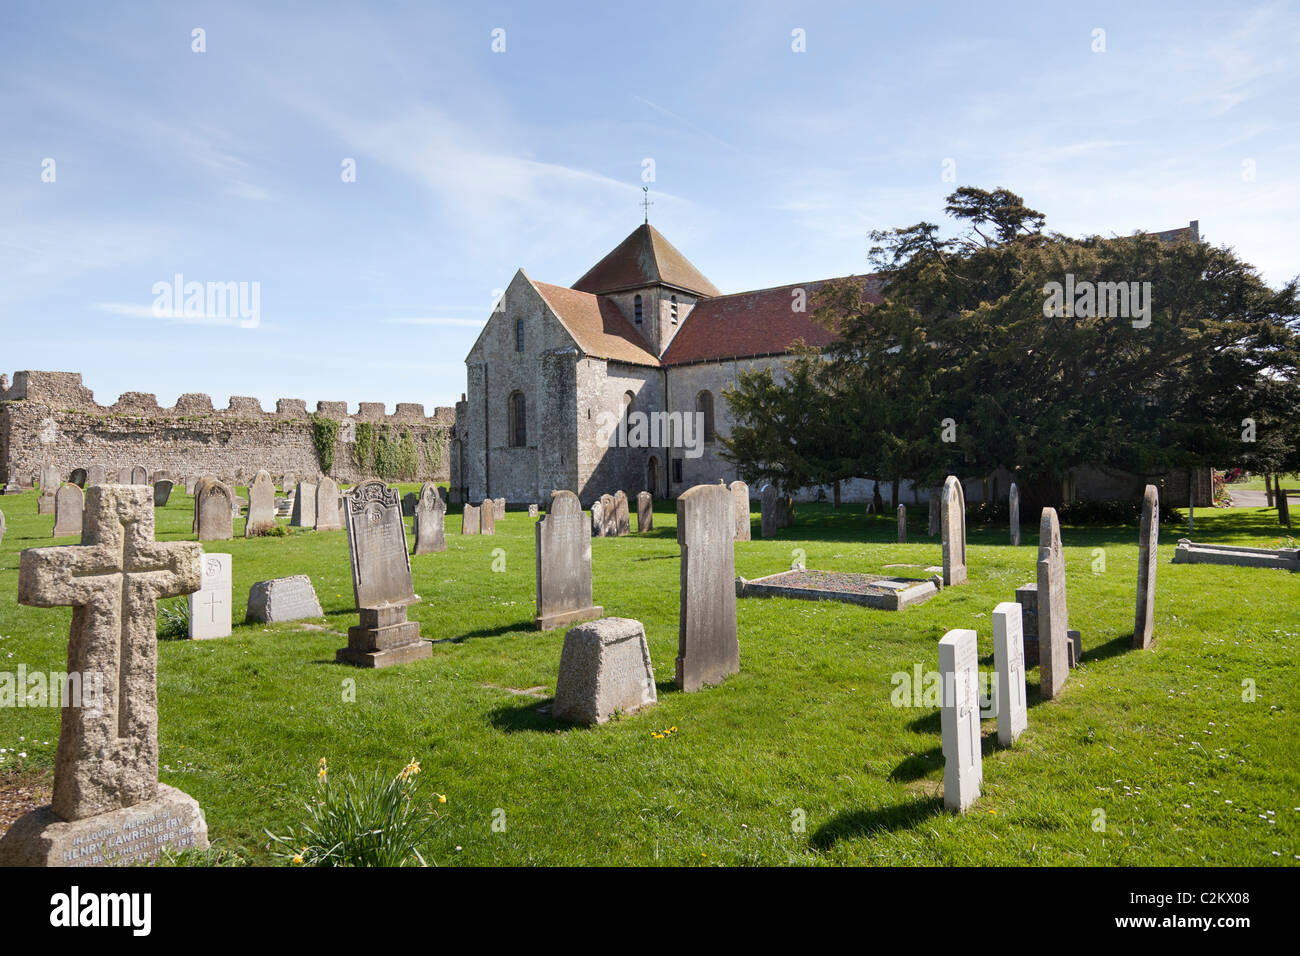 graveyard and 12C Priory at Portchester Castle Stock Photo